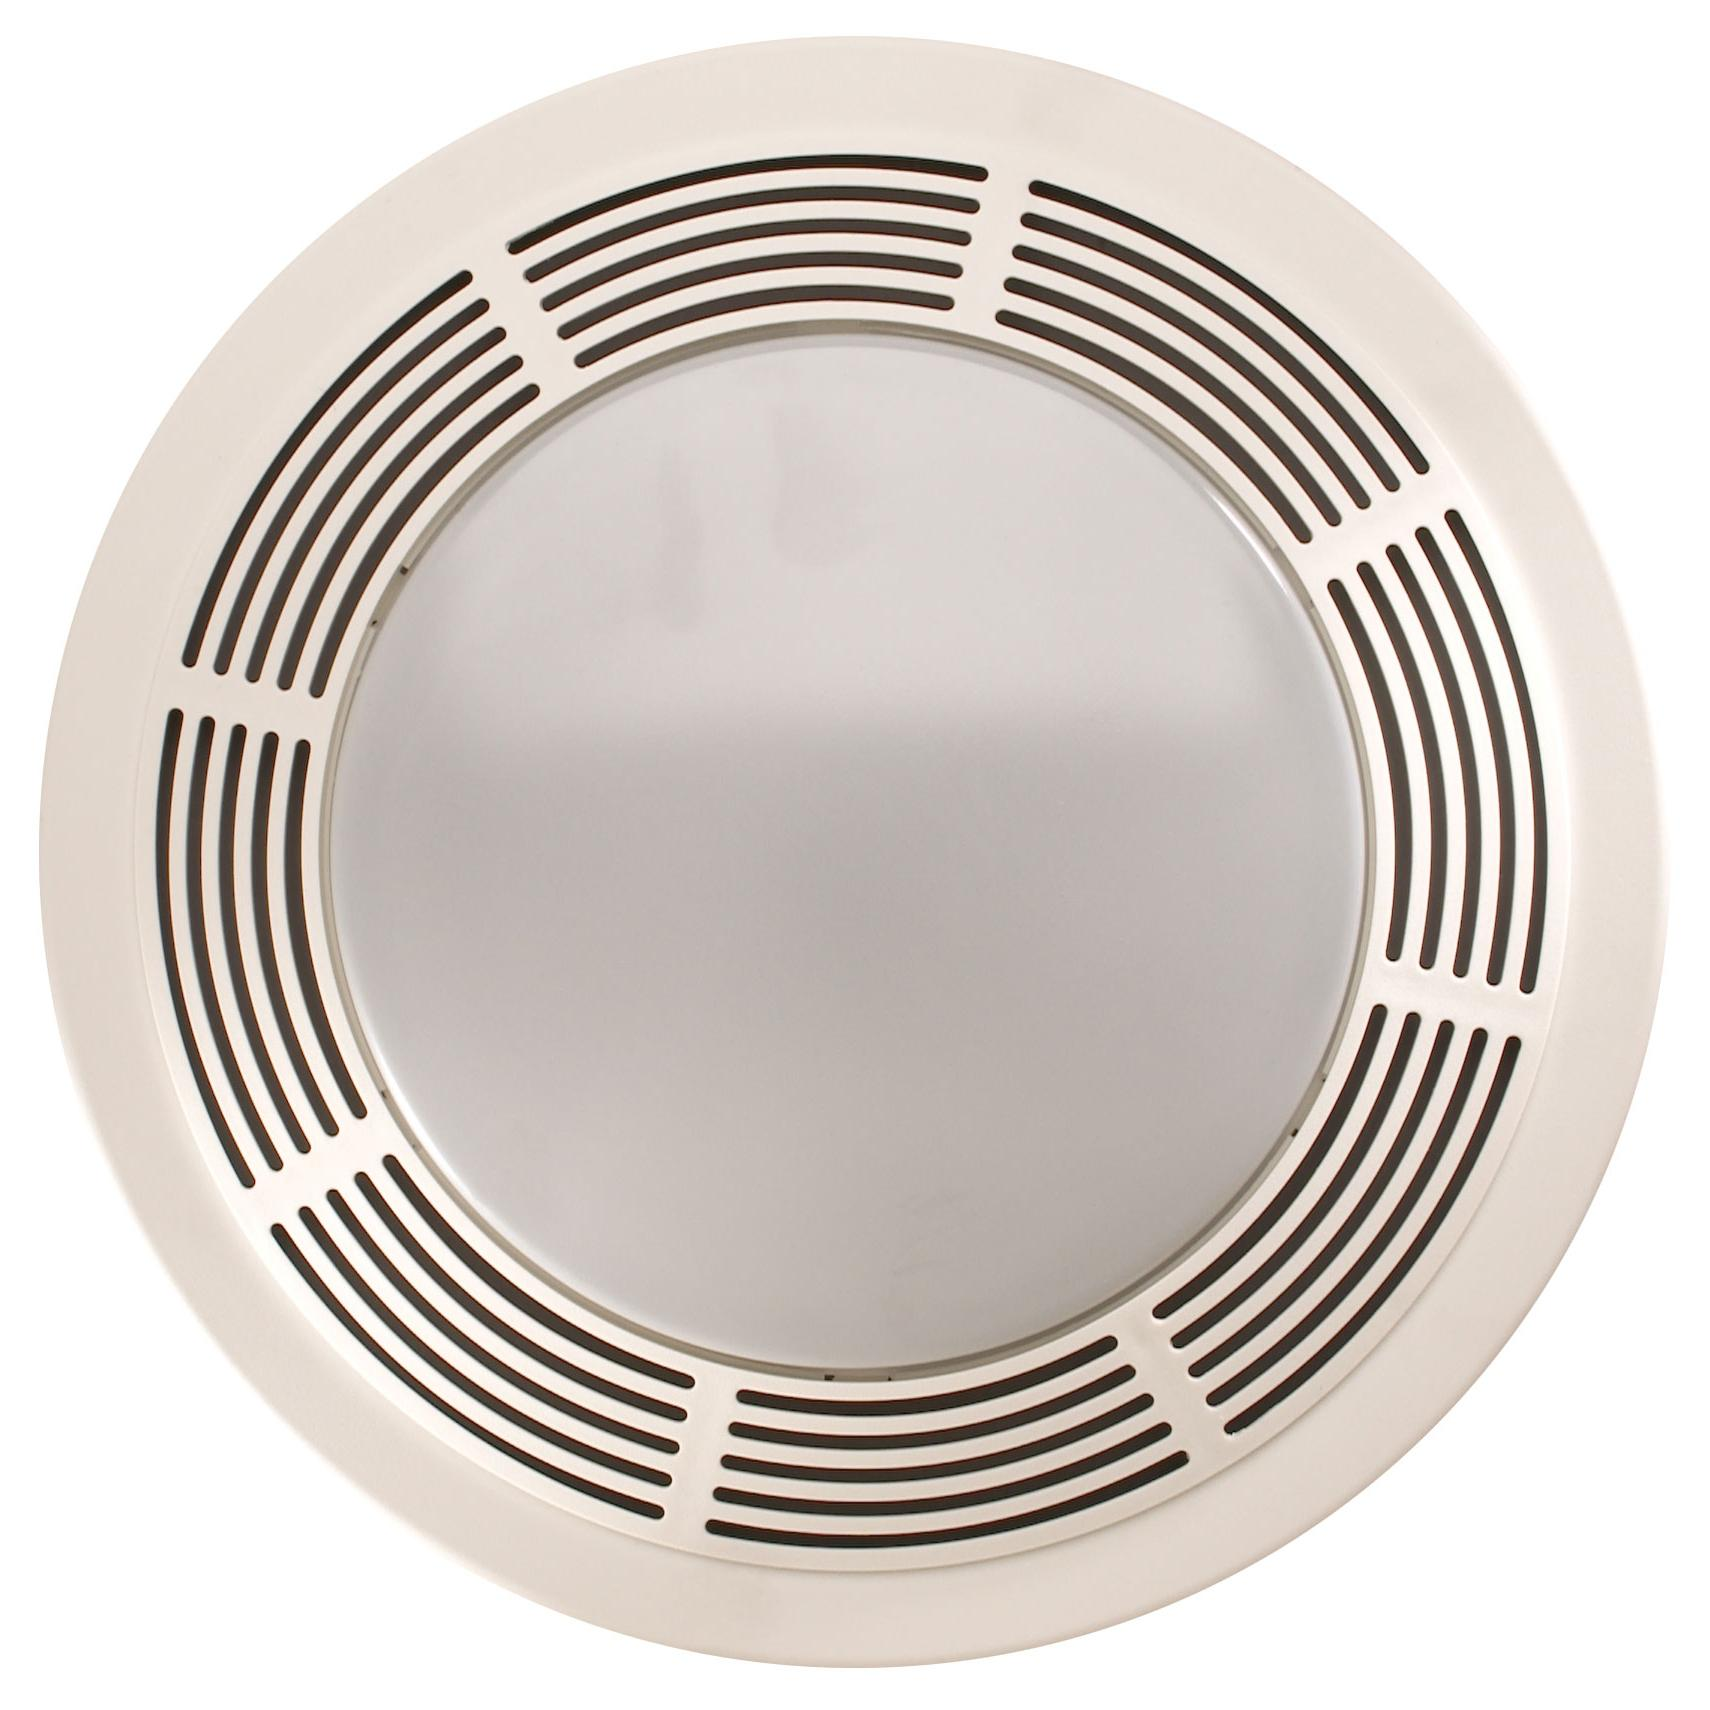 Broan Fan And Light With Round White Grille And Glass Lens - Bathroom exhaust fan 150 cfm for bathroom decor ideas